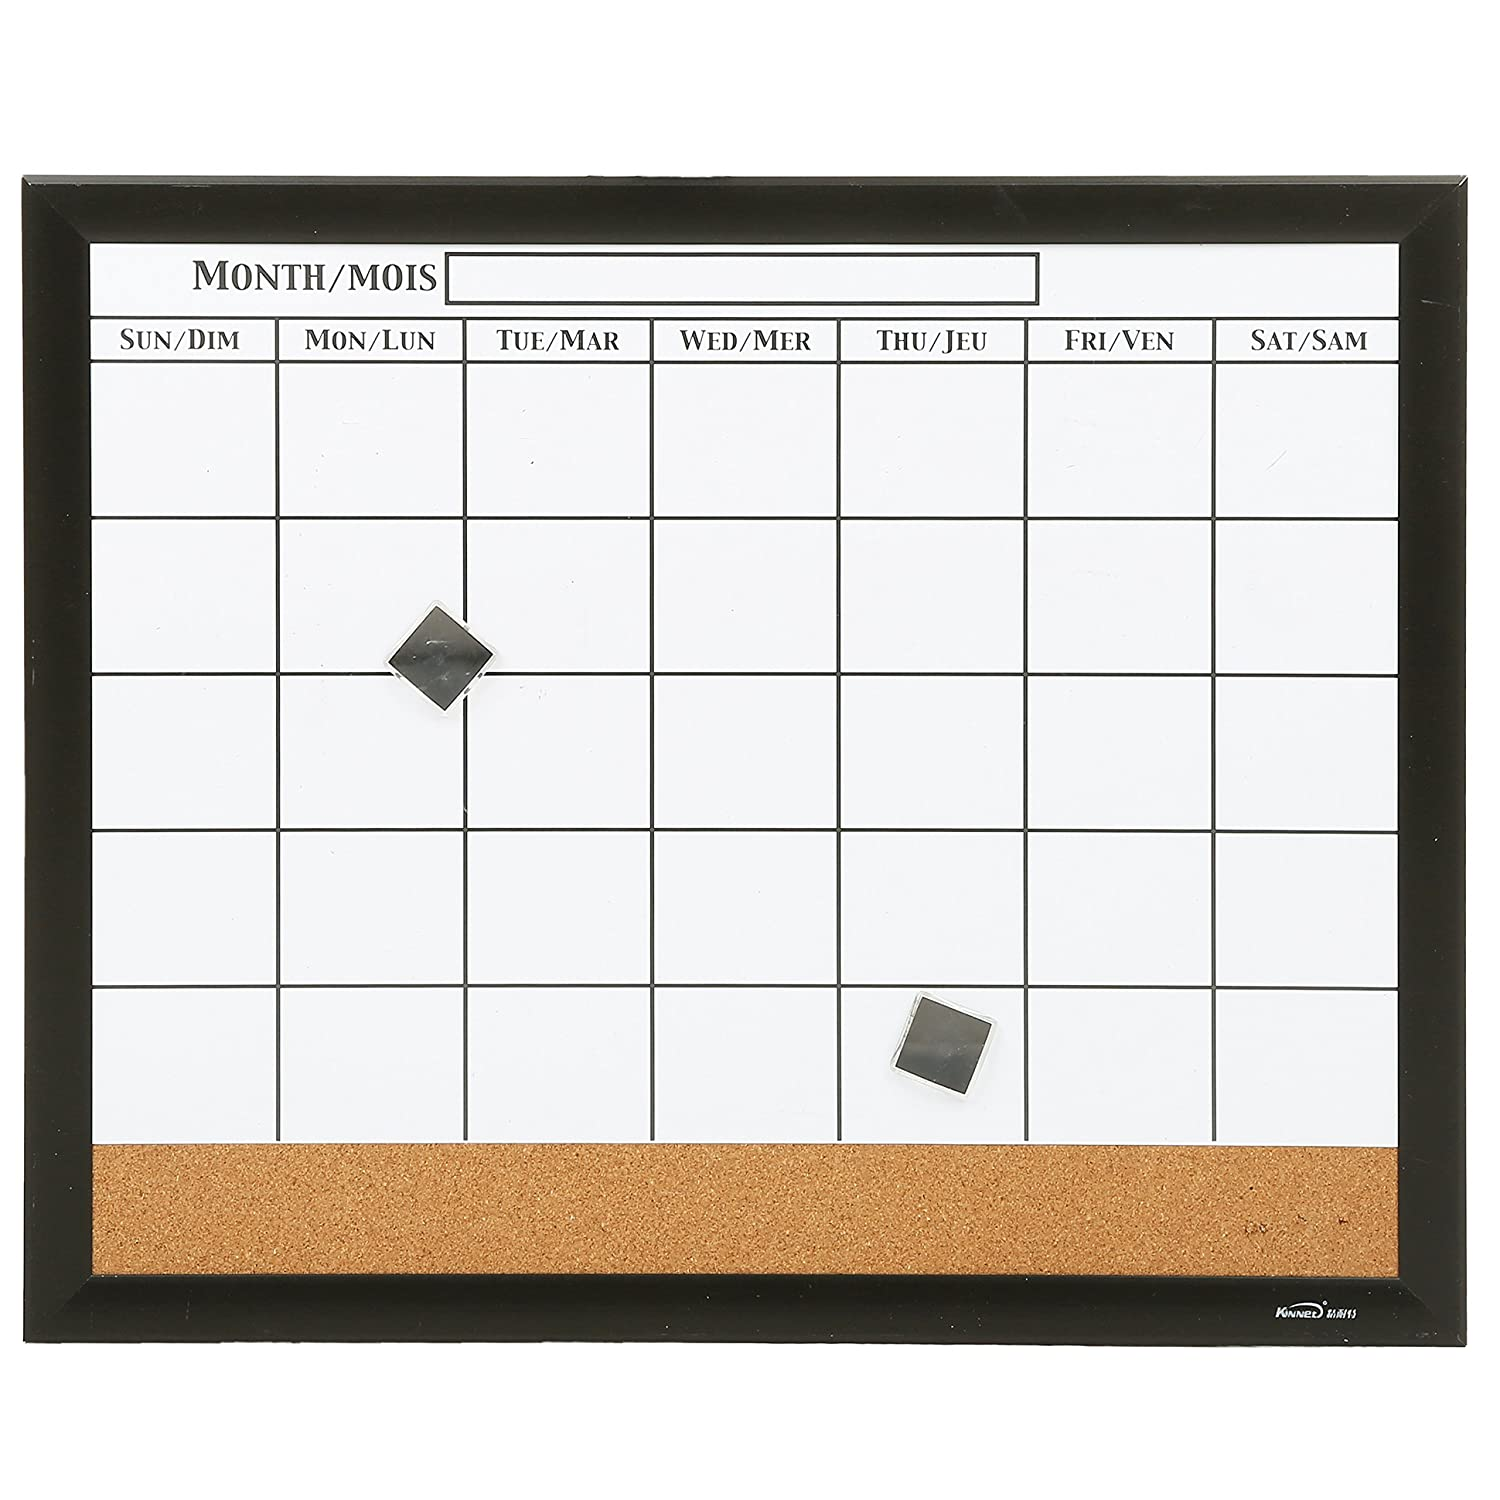 20 X 16 inch Magnetic Message Whiteboard Monthly Calendar with Cork Memo Board & Black Wood Frame